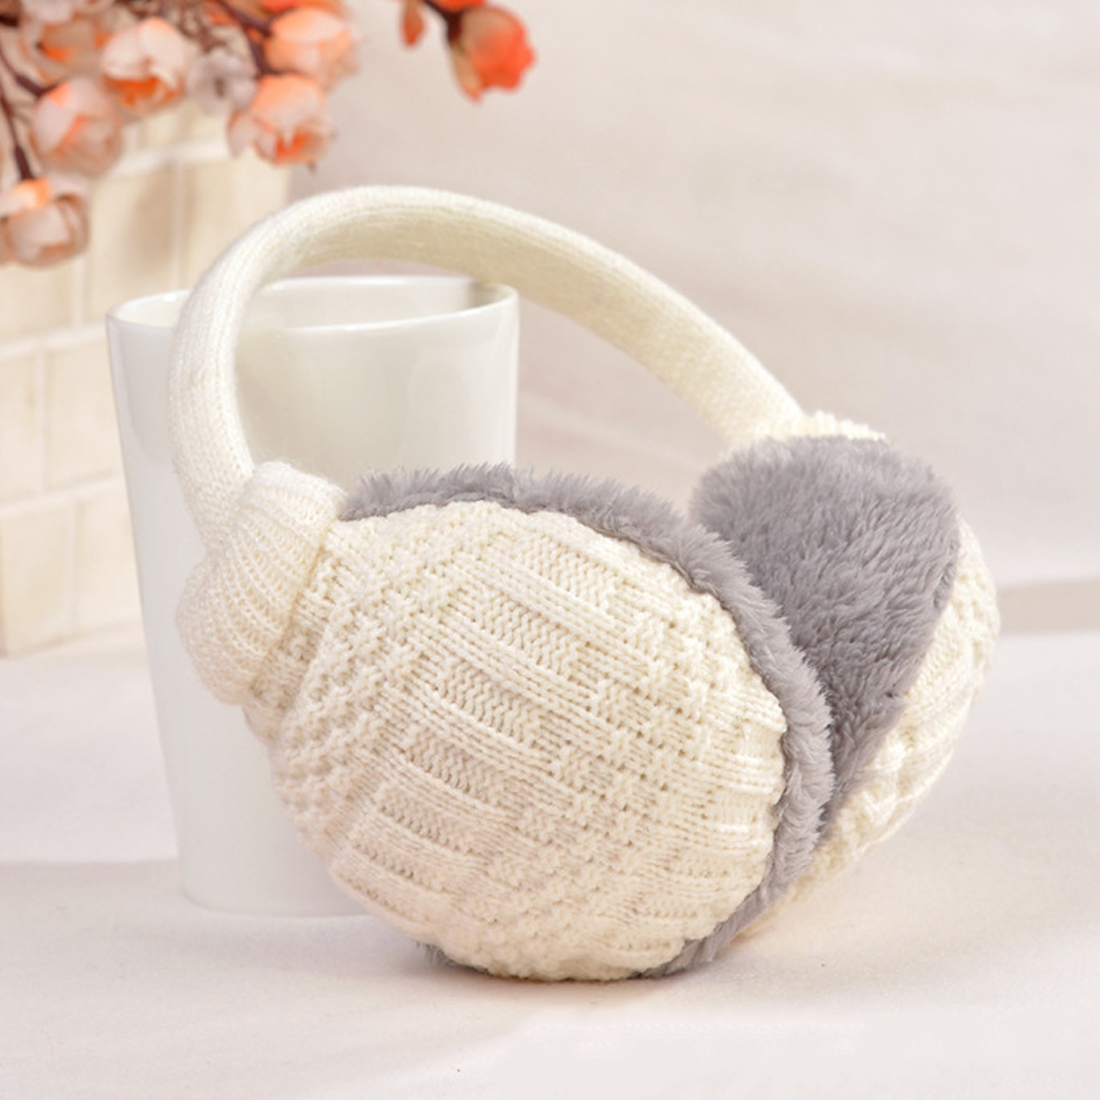 Charming Winter Ear Cover Women Warm Knitted Earmuffs Ear Warmers Women Girls Plush Ear Muffs Earlap Warmer Headband